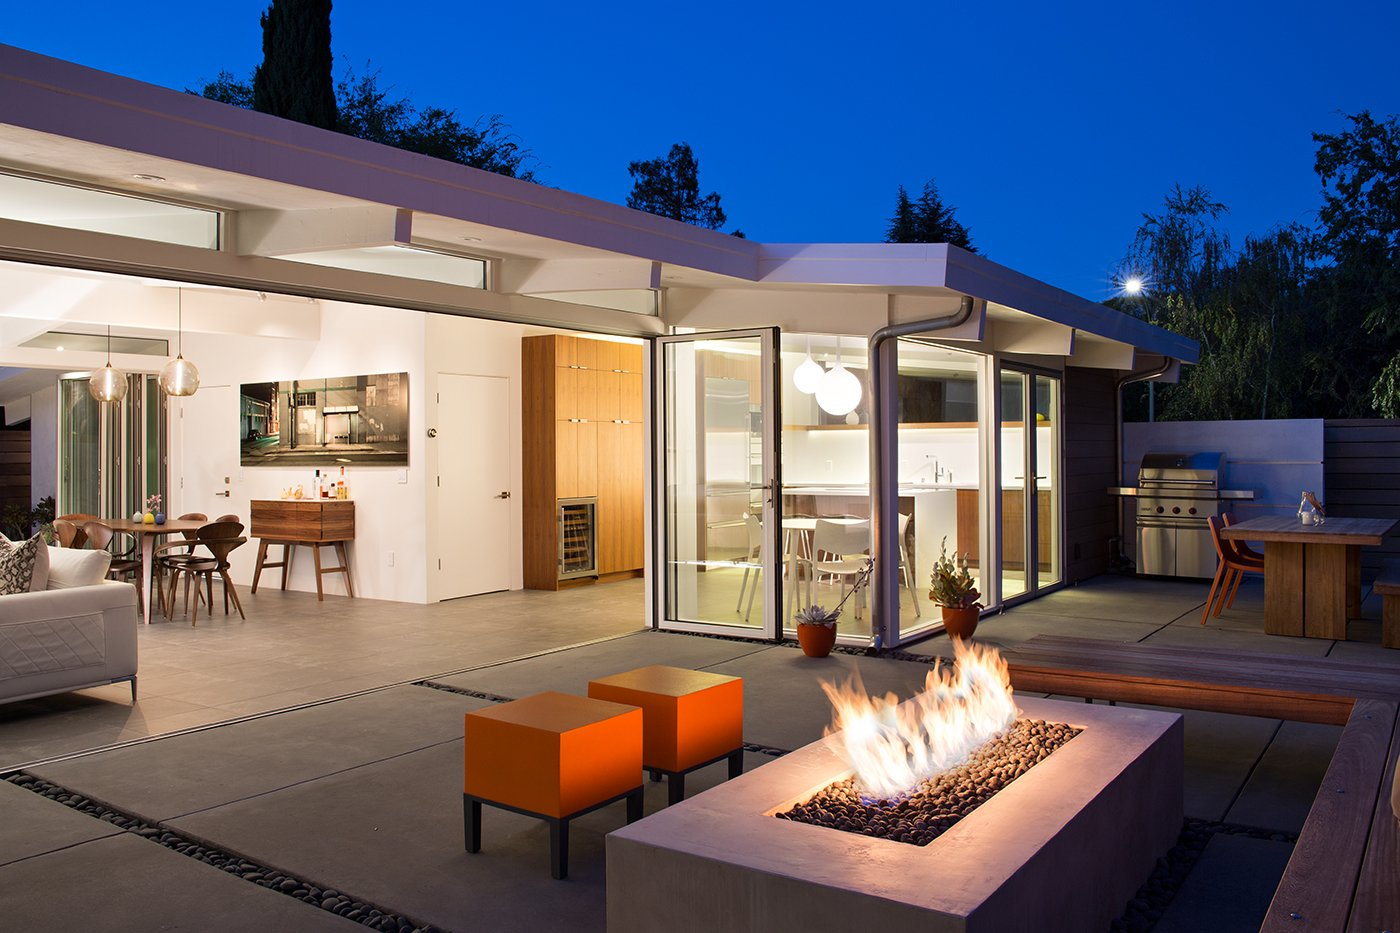 Exterior, Mid-Century Building Type, and House Building Type In the outdoor living area, orange Primary Pouf stools by Quinze & Milan and an ipe bench surround the central fire pit. An outdoor kitchen neighbors its interior counterpart. In addition to a grill, it accommodates a table and bench by Kayu.  Modern Eichler Renovations by Allie Weiss from Indoor-Outdoor Home by a Midcentury Master Gets a Faithful Update